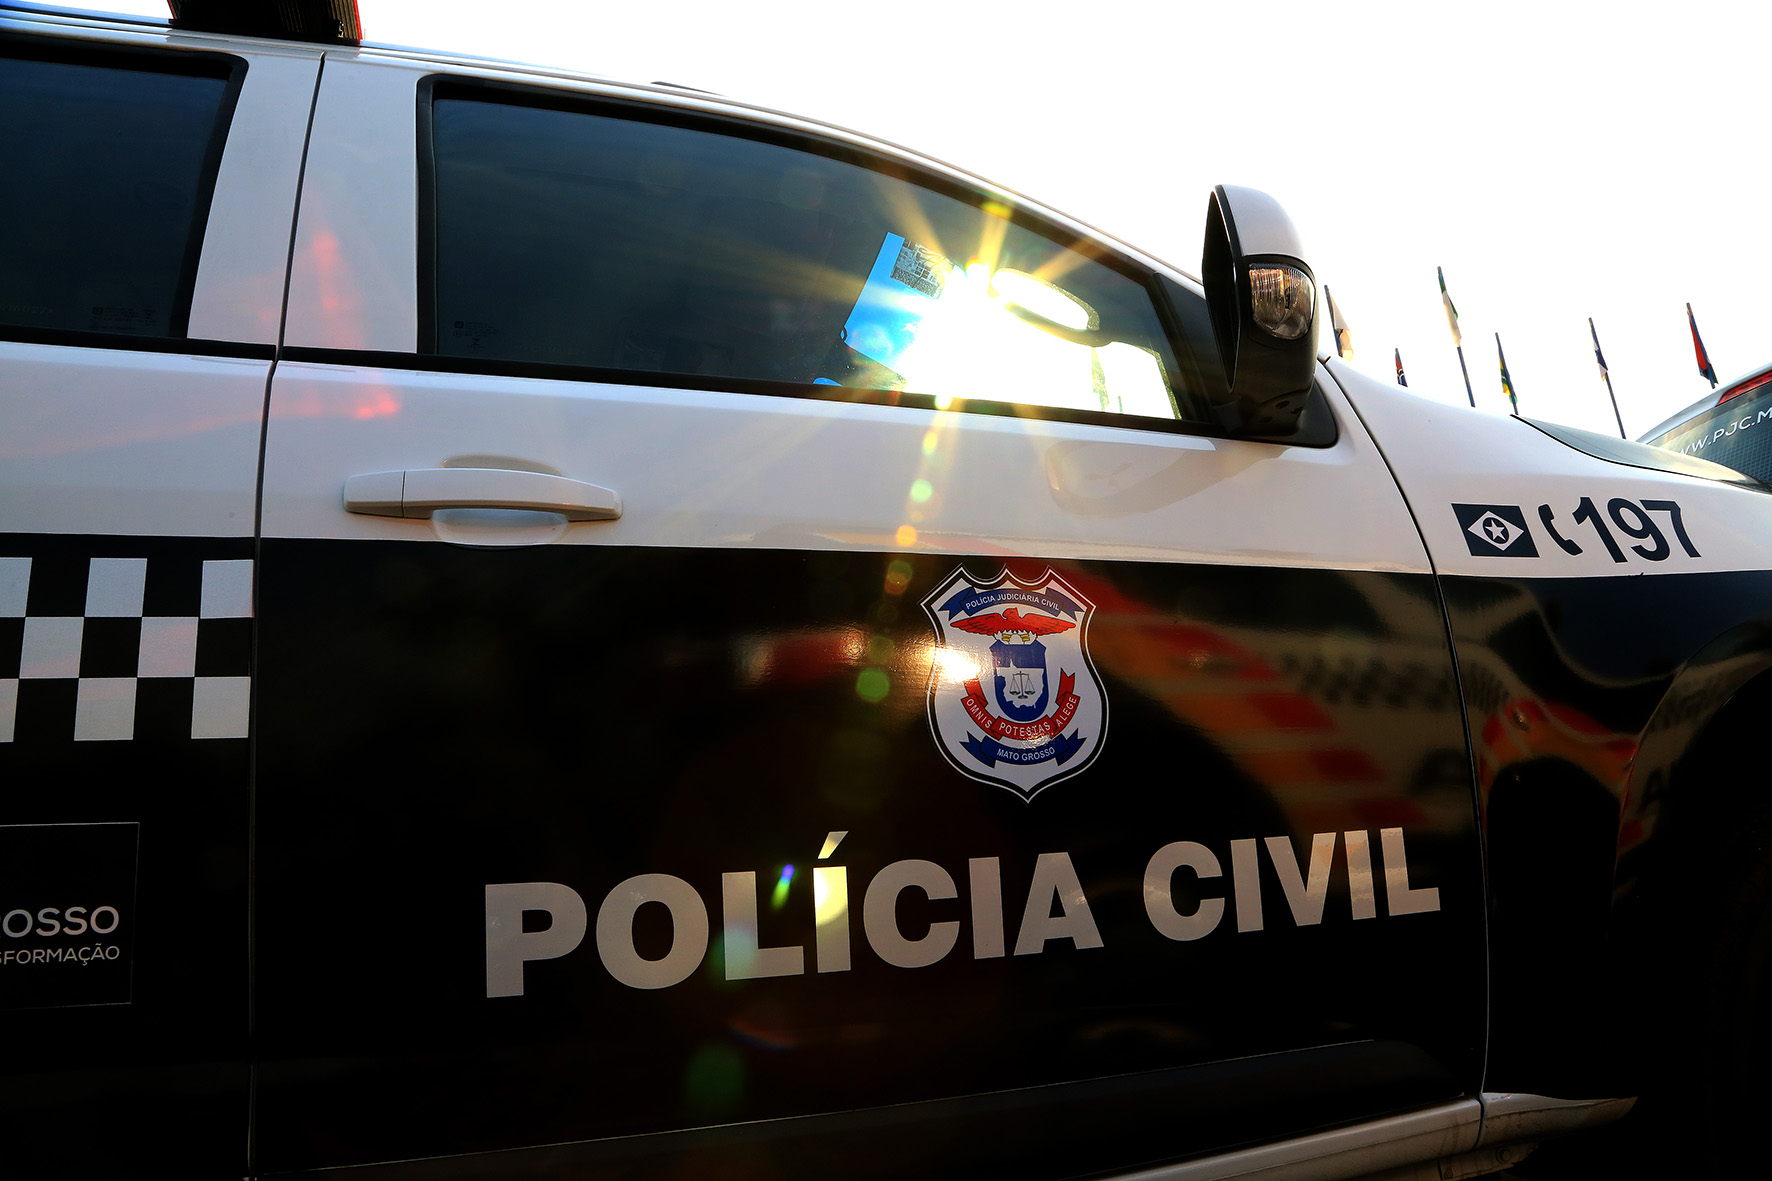 policia civil viatura